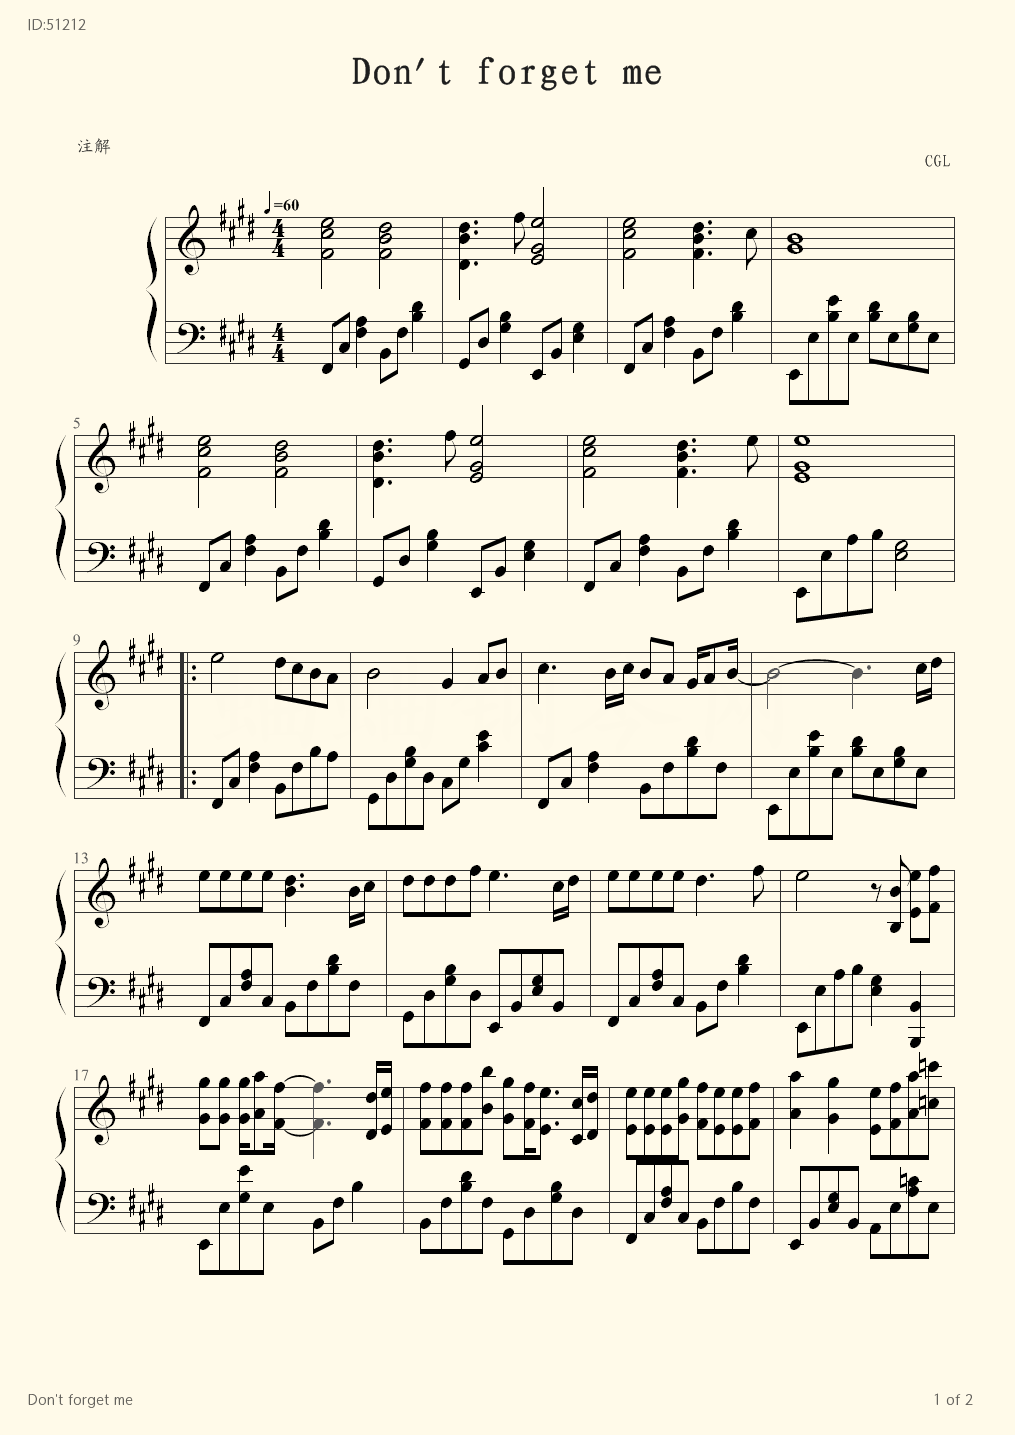 Don t forget me - CGL - first page